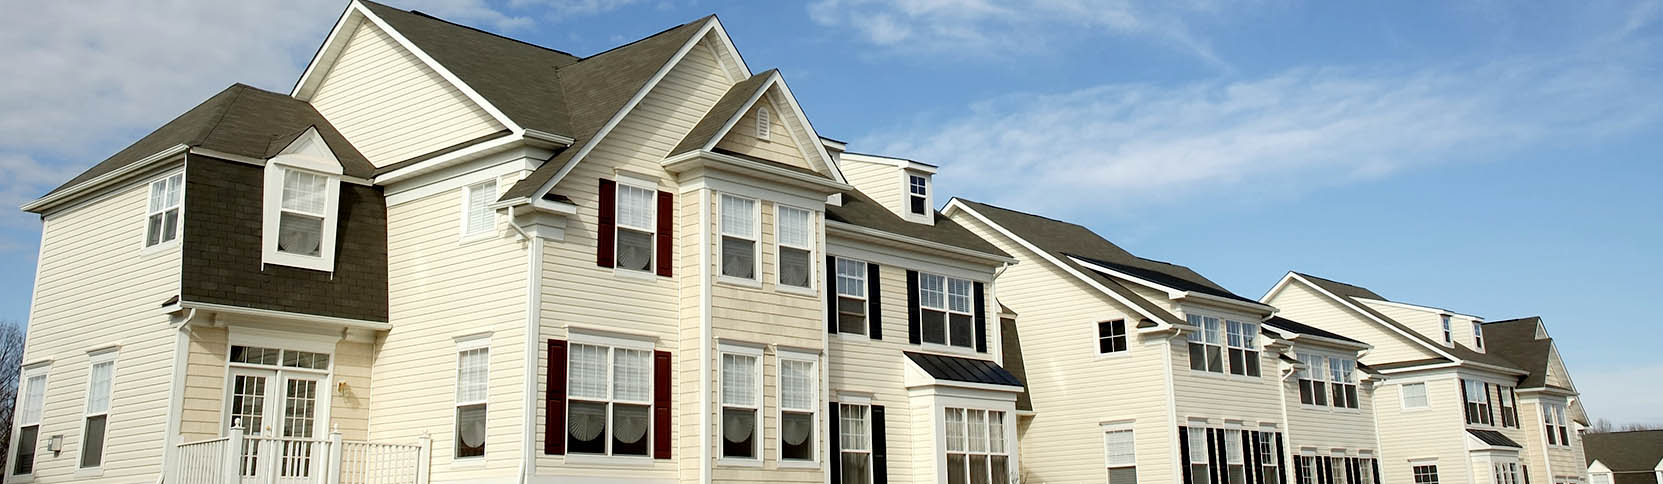 East Meadow ny roofing company